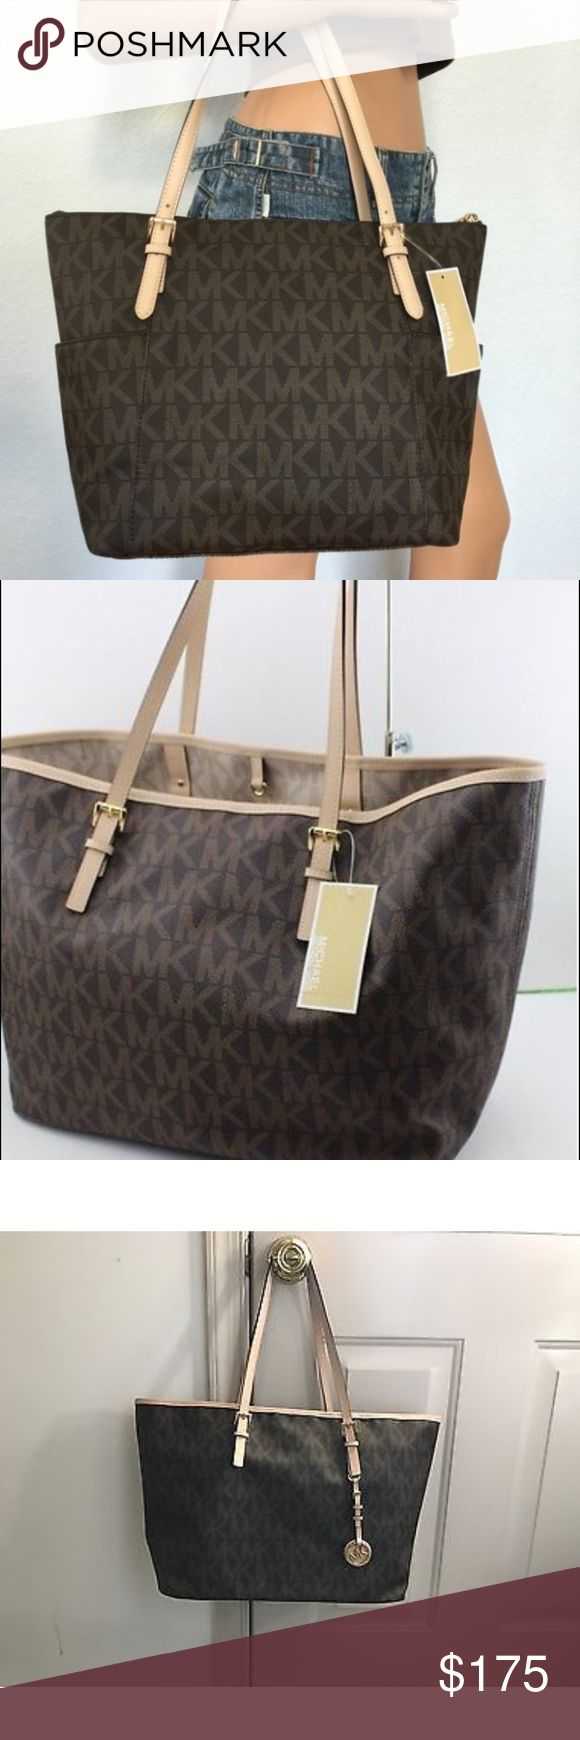 """Authentic MK jet set handbag MICHAEL KORS BROWN JET SET EW MK PVC   BRAND NEW WITH TAGS 100% AUTHENTIC  A classic silhouette made for a sophisticated, modern MICHAEL Michael Kors bag Double handles with 9 1/2"""" drop Buckled shoulder straps Side exterior slip pockets Michael Kors lining Gold-tone hardware; detachable logo  Interior features zip pocket, 4 slip pockets and key fob 12"""" Bottom/ 16 1/2"""" Top W x 11 1/2"""" H x 4 1/2"""" D Polished with GOLD tone hard ware COLOR: Brown MICHAEL Michael Kors…"""